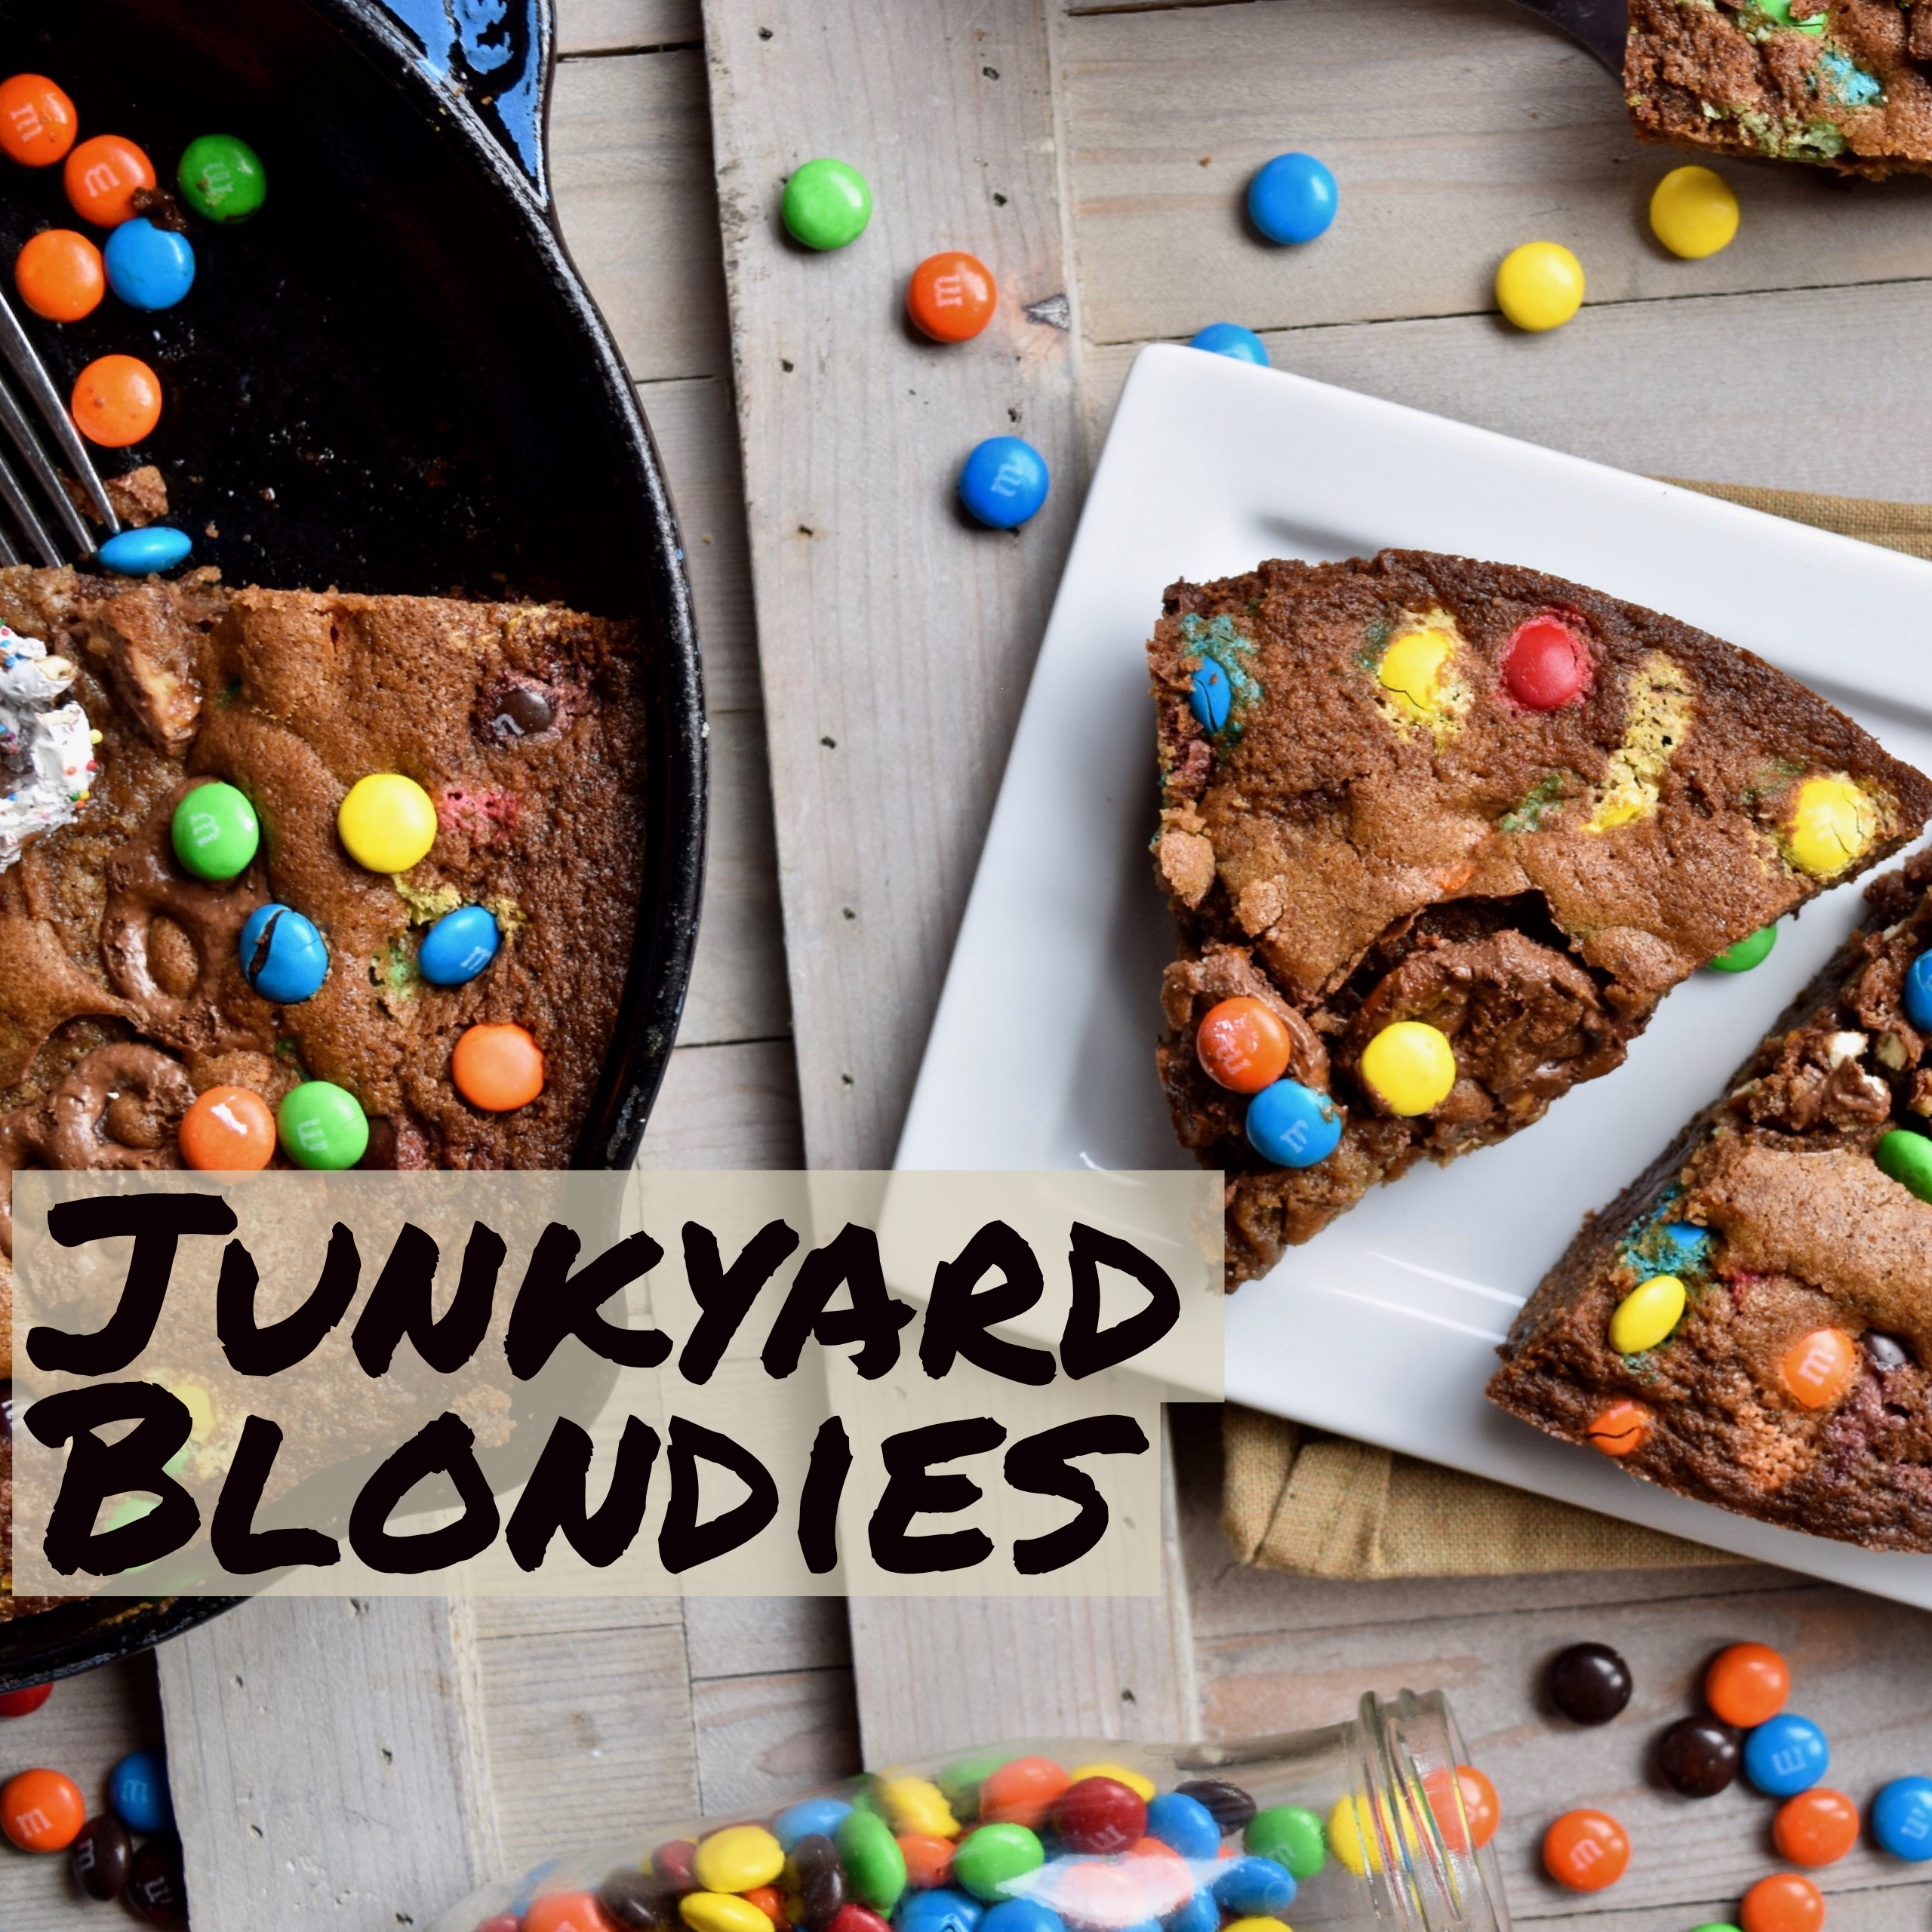 Junkyard Blondies